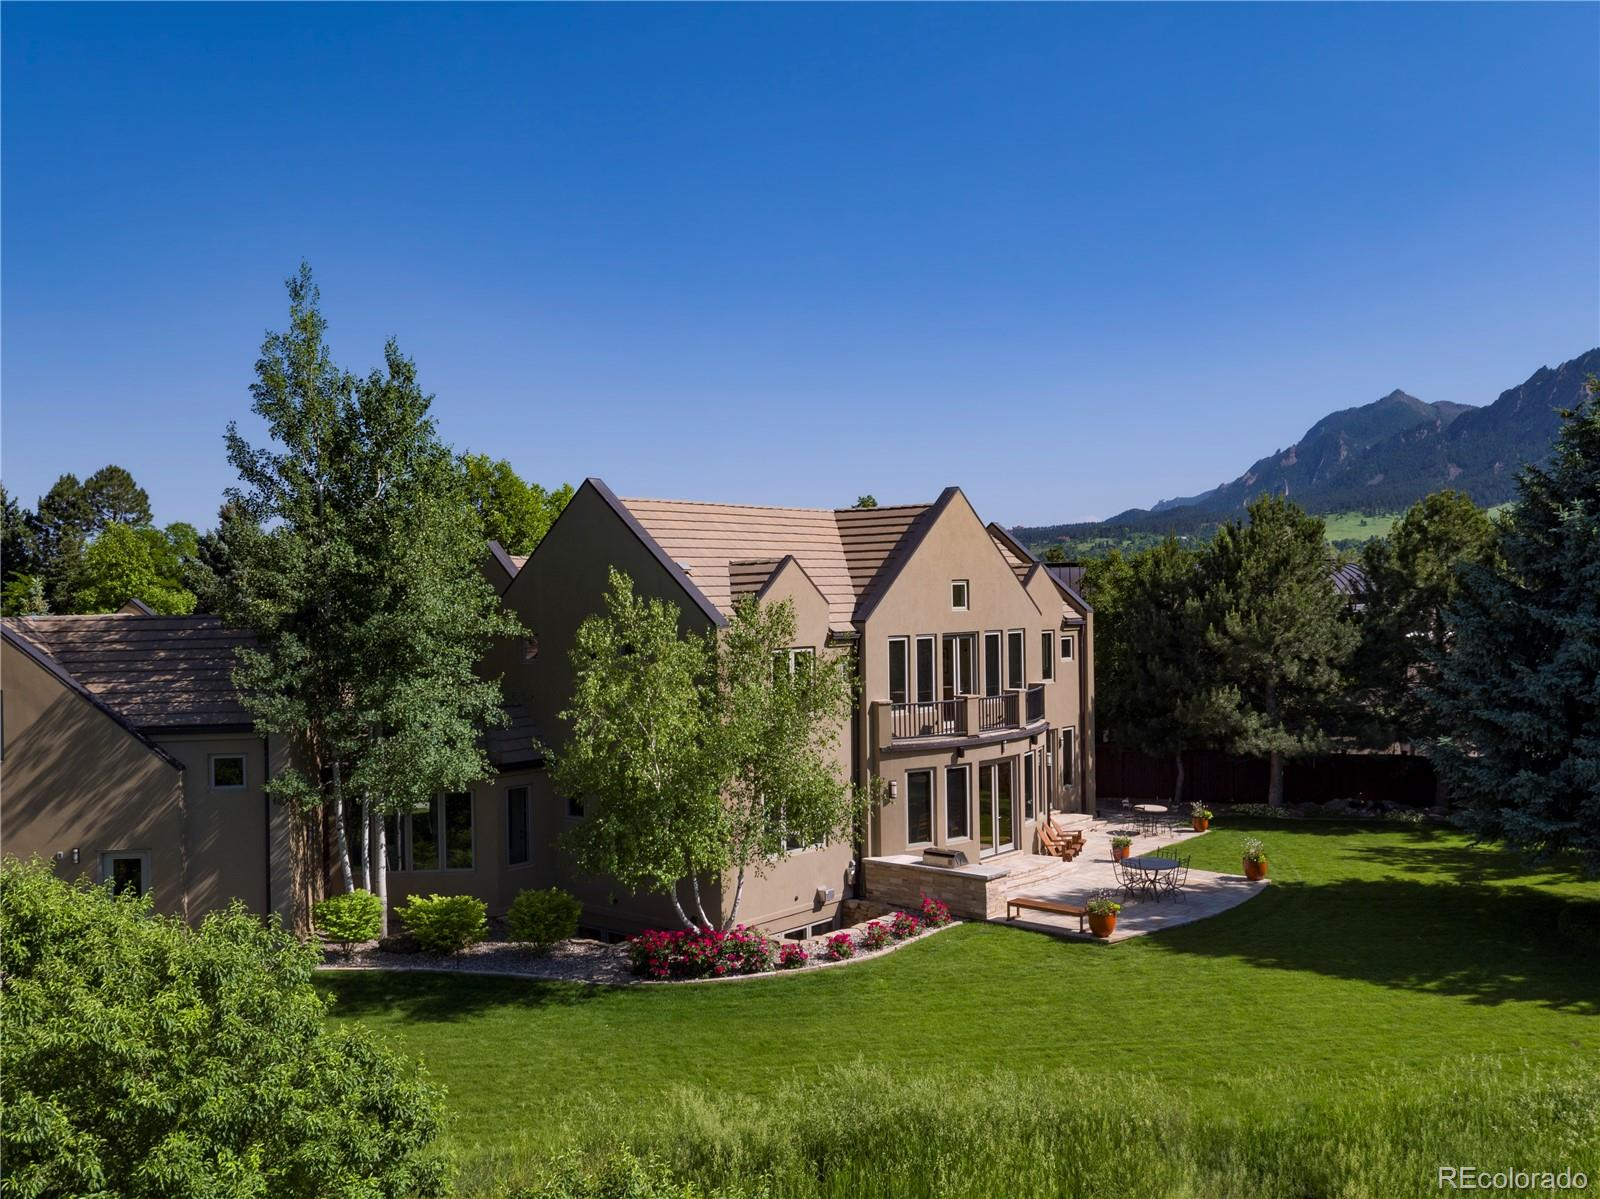 A stunning 1.29-acre oasis with huge, unobstructed views just minutes from downtown Boulder. 7BD/7BA, 6000+SF luxury residence. Main level features large indoor-outdoor living spaces, chef's kitchen, laundry and a bedroom suite. Four more bedrooms upstairs including enviable master suite with two walk-ins, private balcony and a spa bath. Amazing finished basement level with wet bar, wine room. rec room and two more bedroom suites. 2+ car attached garage. Expansive landscaped grounds and patio.